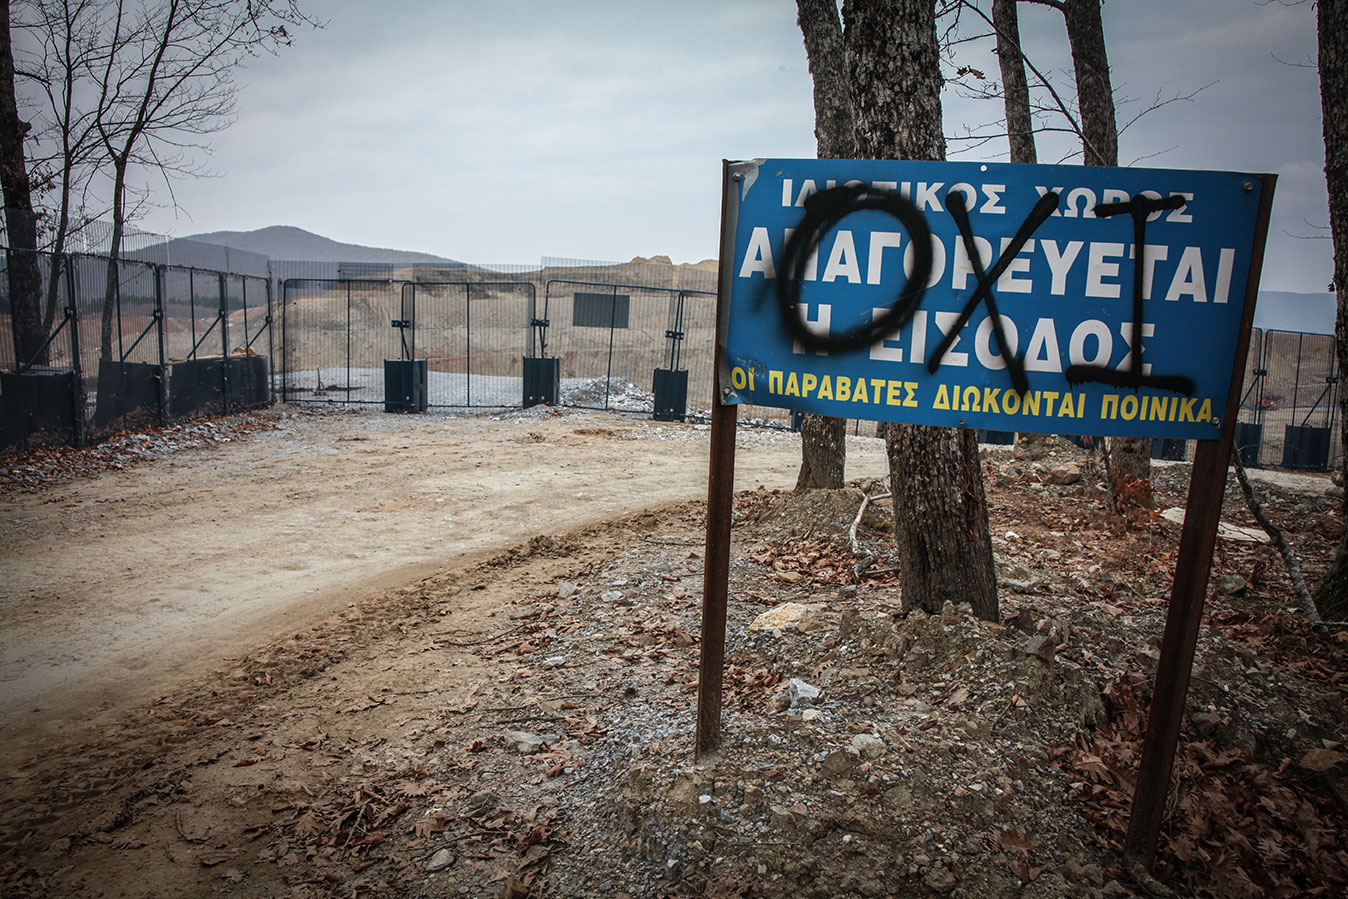 During the general election campaign of January 2015, Syriza was at the forefront of the movement calling for the closure of the mine. In a region where the conservative party New Democracy traditionally prevails, Syriza's promise to close down the mine earned the party an extra parliamentary seat. Although after a year, the mine remains open, it seems that Alexis Tsipras' government is now more inclined to make good on its promise – to the point of engaging in a tug of war with the CEO of Eldorado Gold.